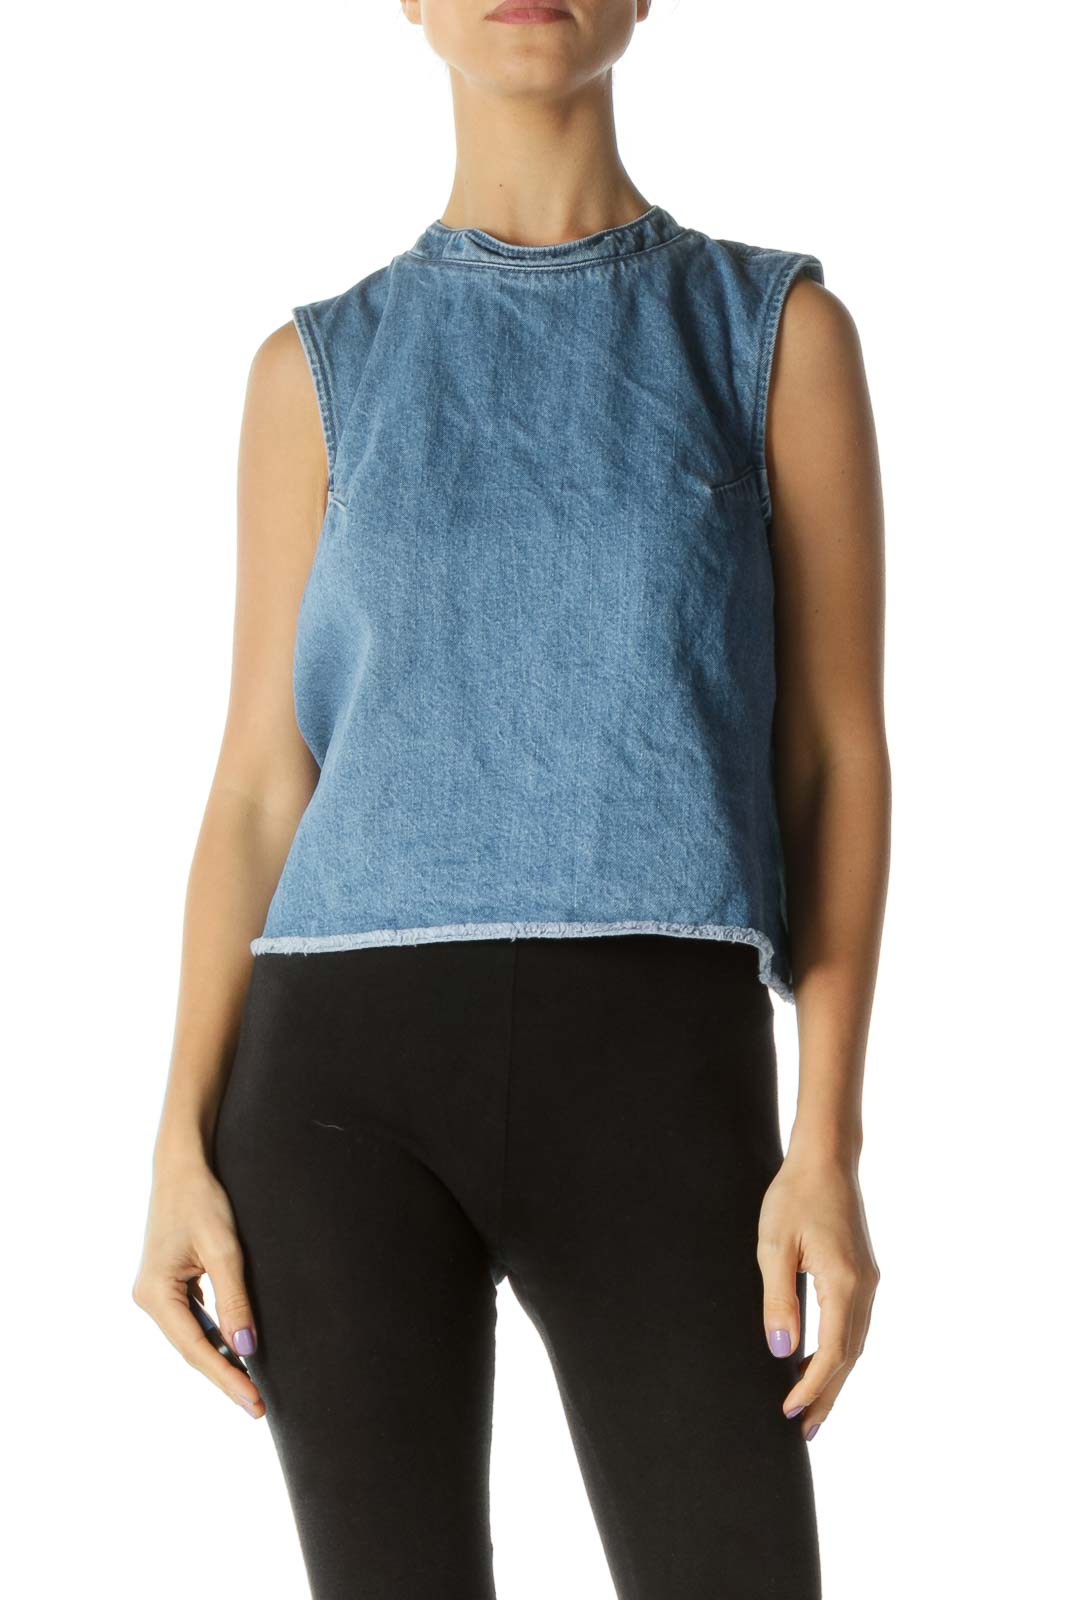 Blue Denim Mock Neck Sleeveless Top